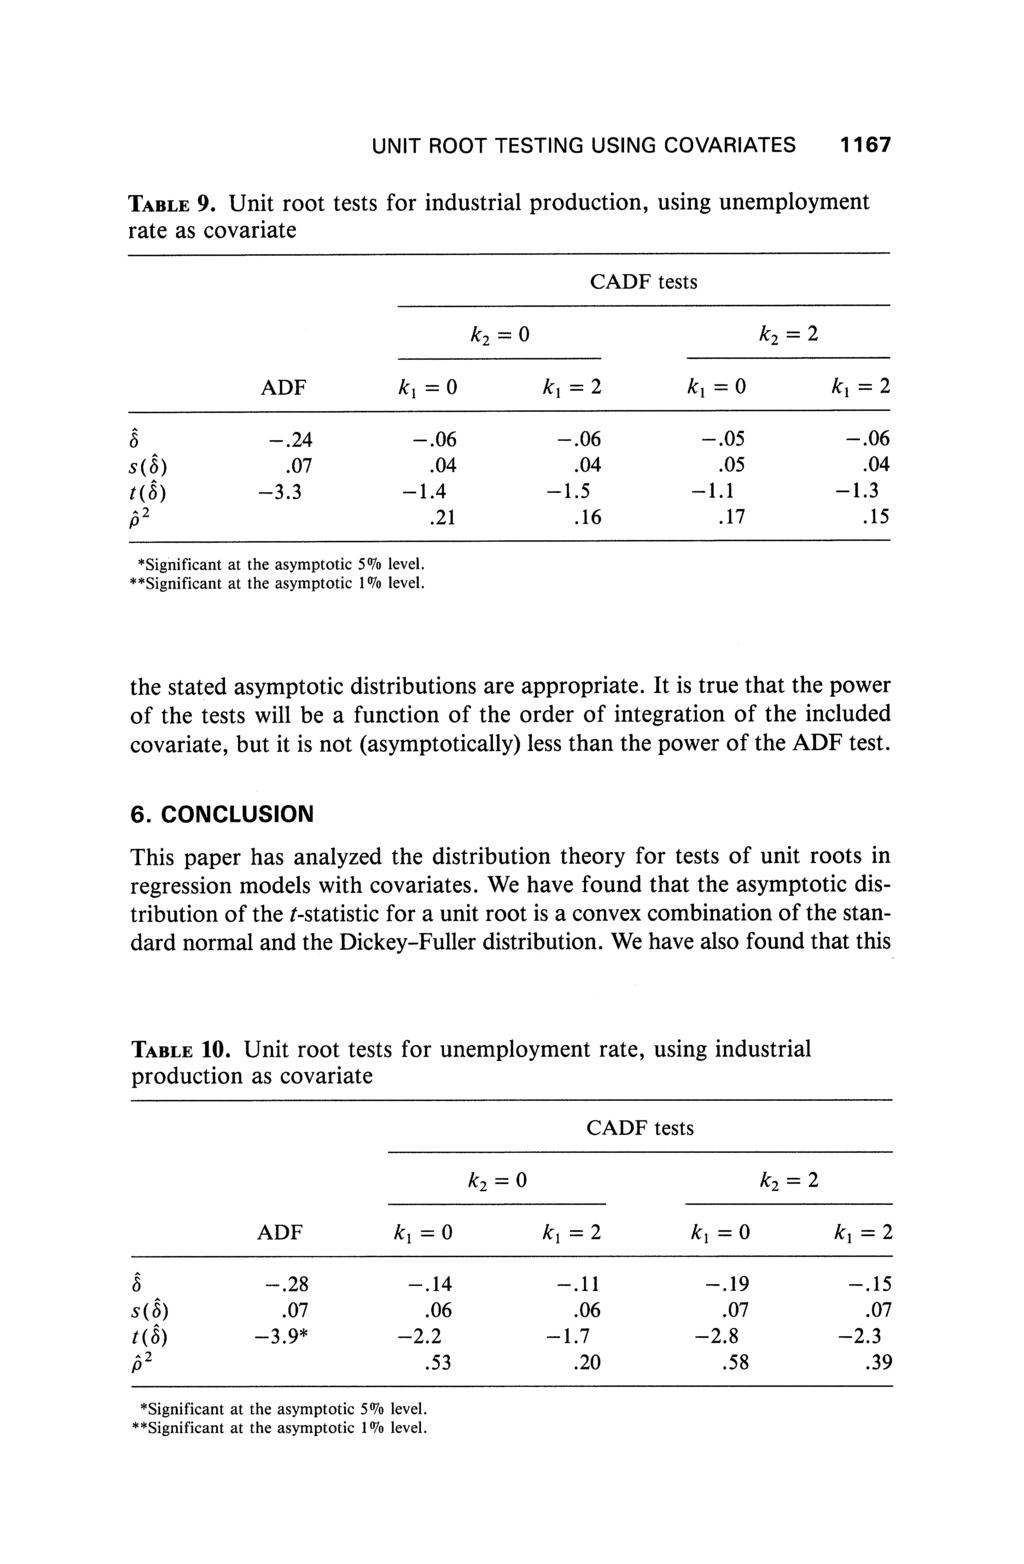 RETHINKING THE UNIVARIATE APPROACH TO UNIT ROOT TESTING - PDF